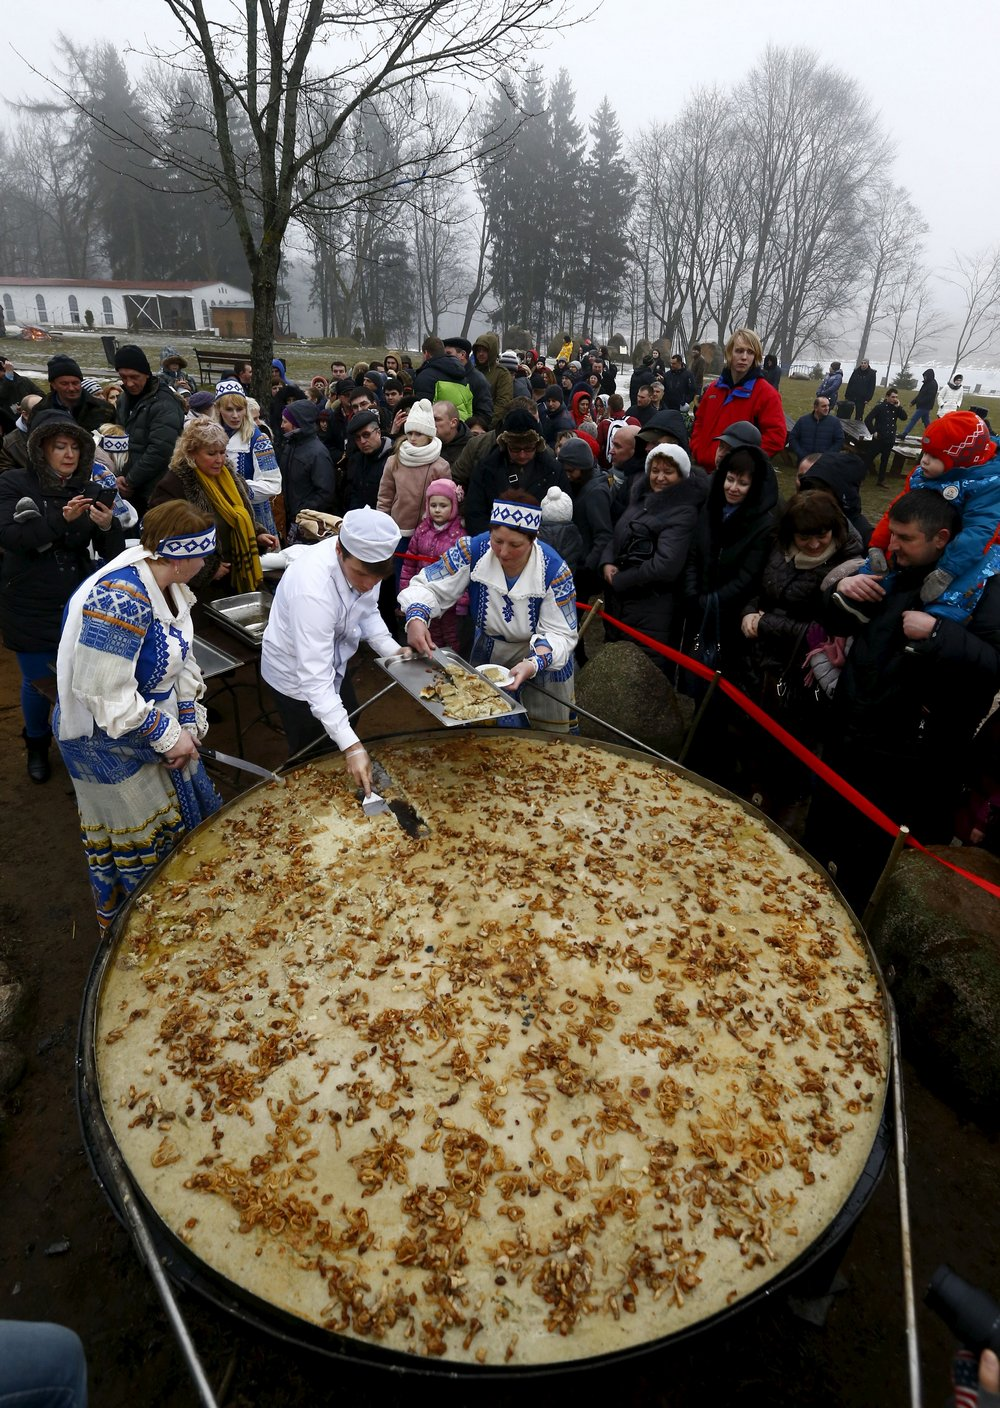 Employees cut fried dranik, a potato pancake that is the national dish of Belarus, to entertain visitors in the Sula History Park near the village of Sula